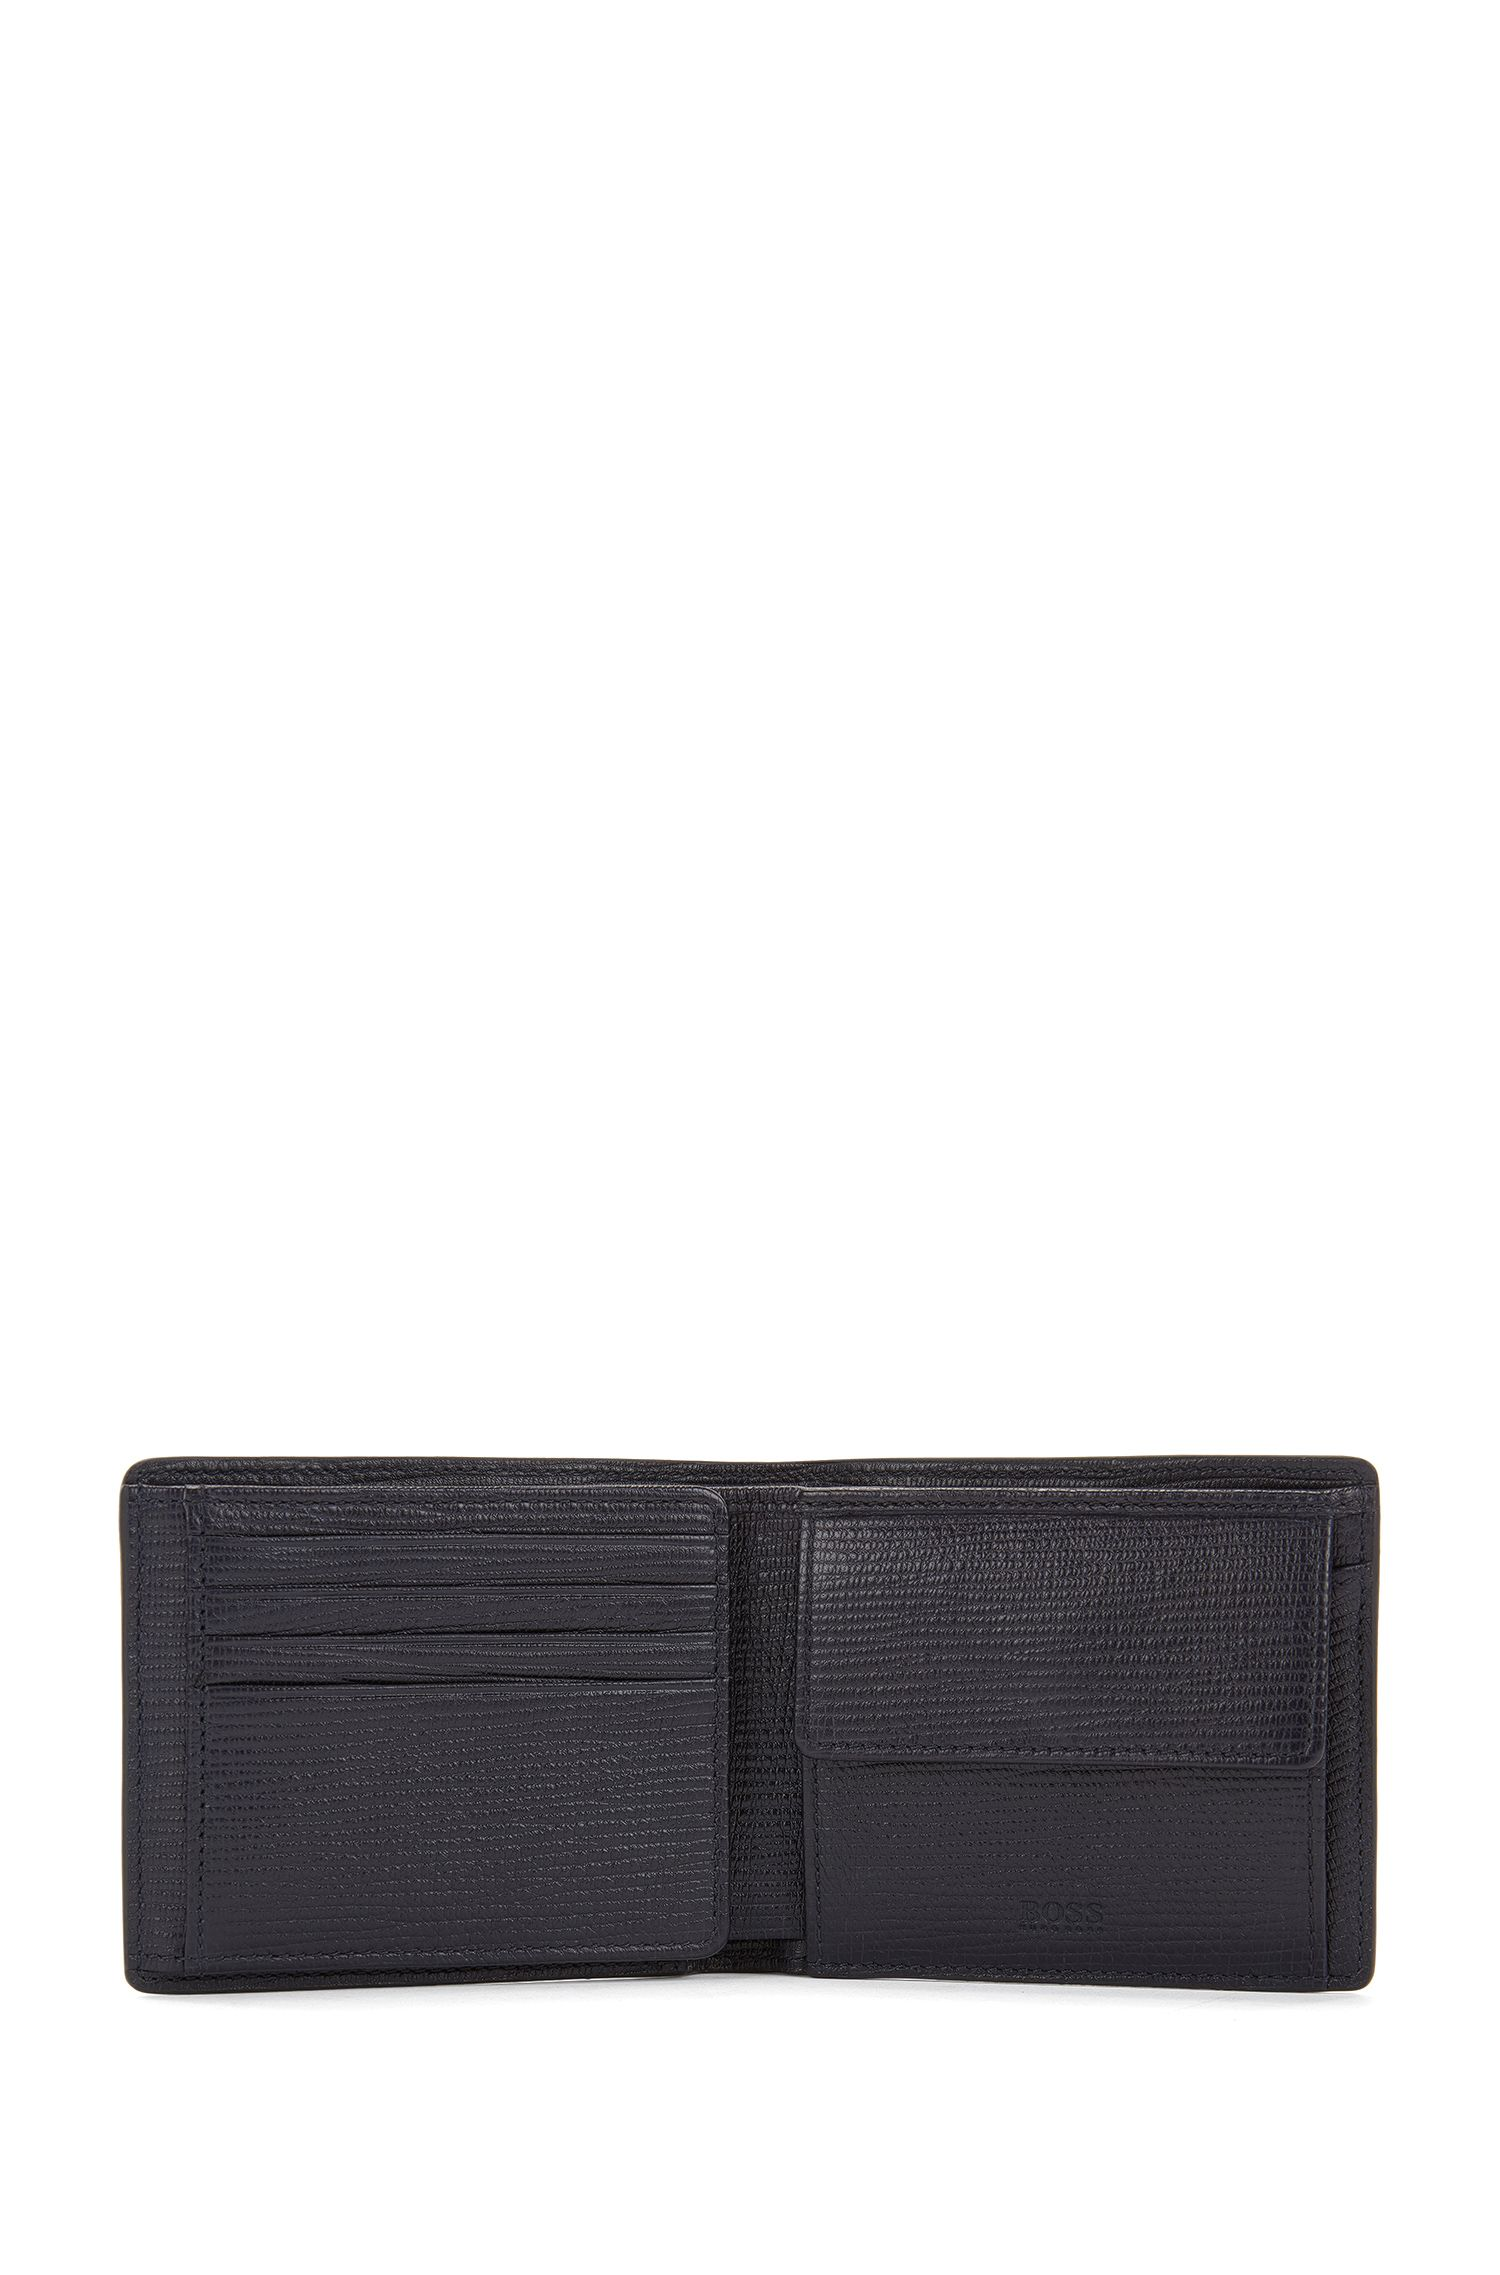 Trifold printed leather wallet with eight card slots